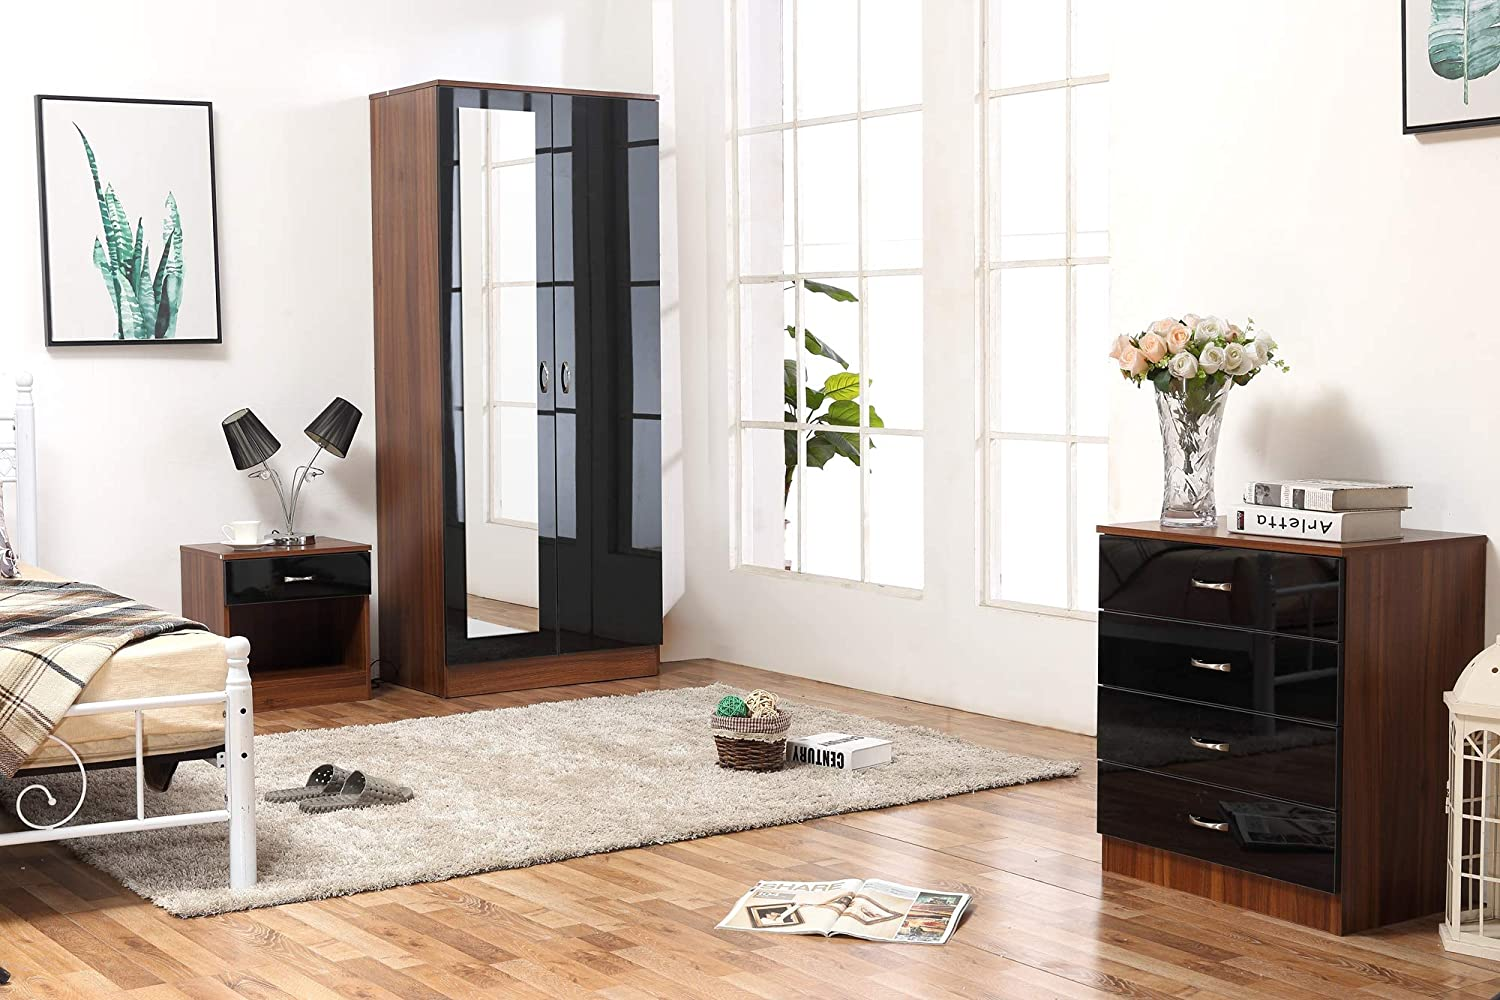 Mirrored High Gloss 3 Piece Bedroom Furniture Set - Soft Close Wardrobe, 4 Drawer Chest, Bedside Cabinet (Black on Walnut) Harmin Ltd